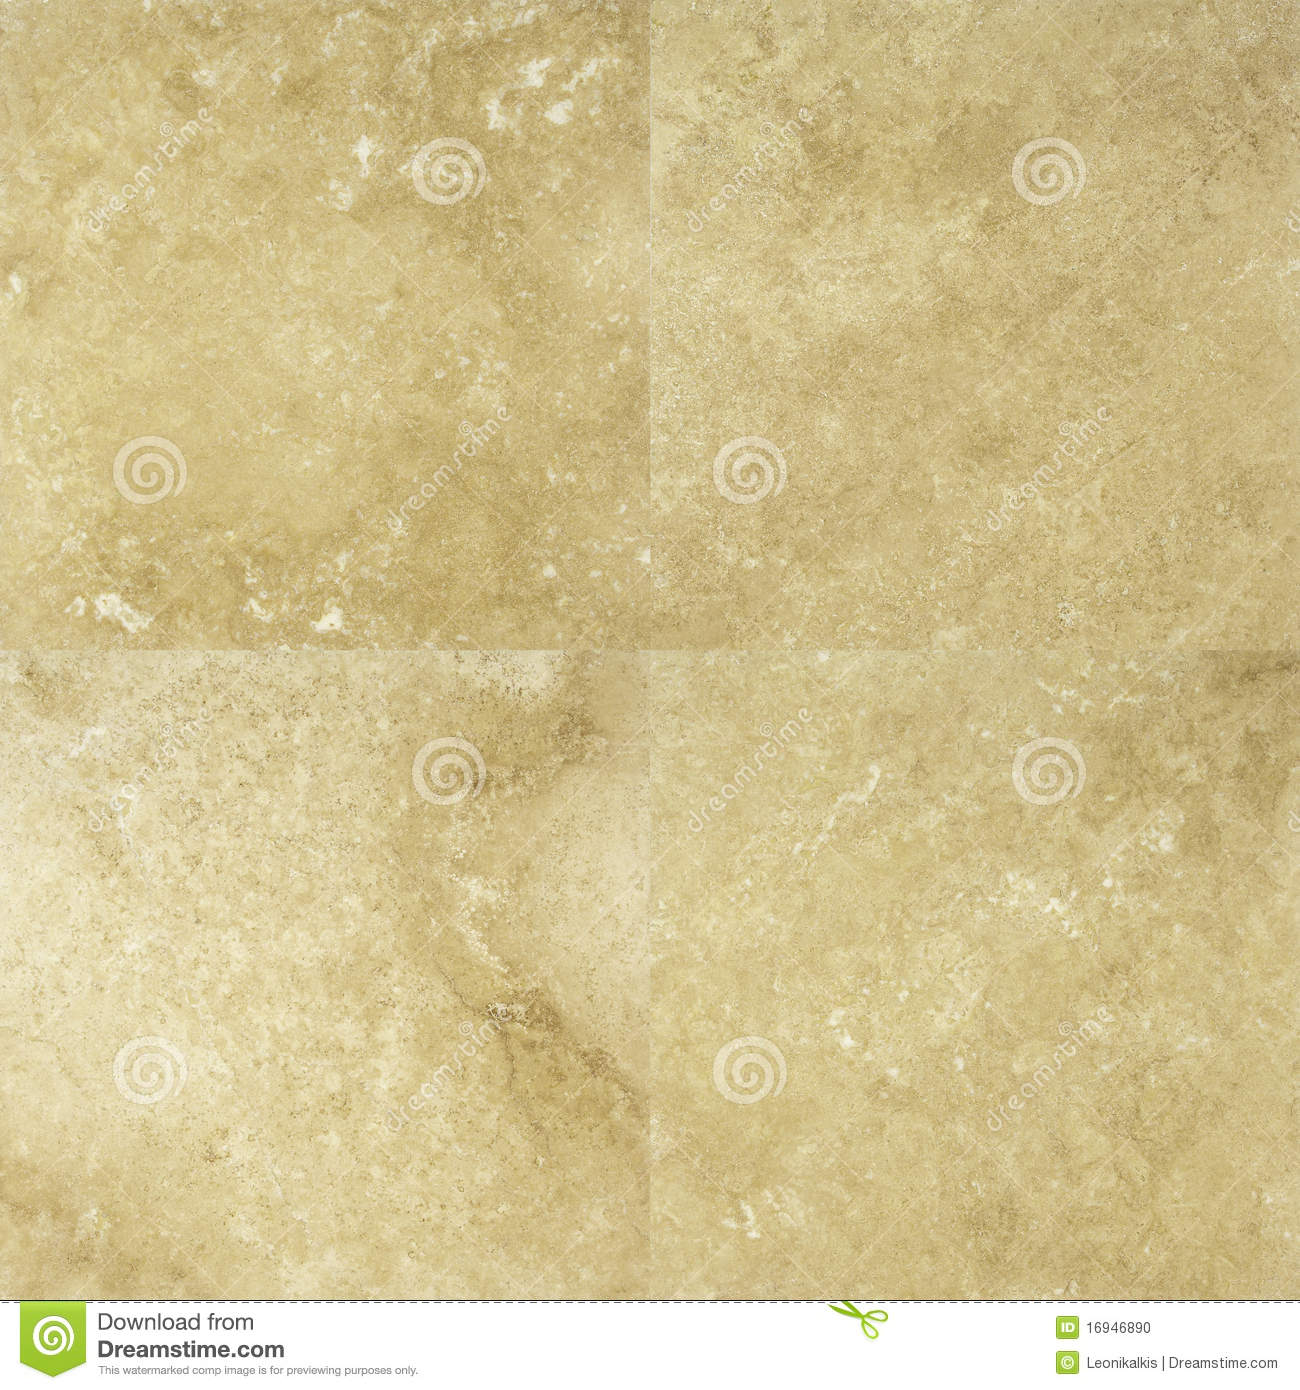 More Similar Stock Images Of Marble Floor Tile